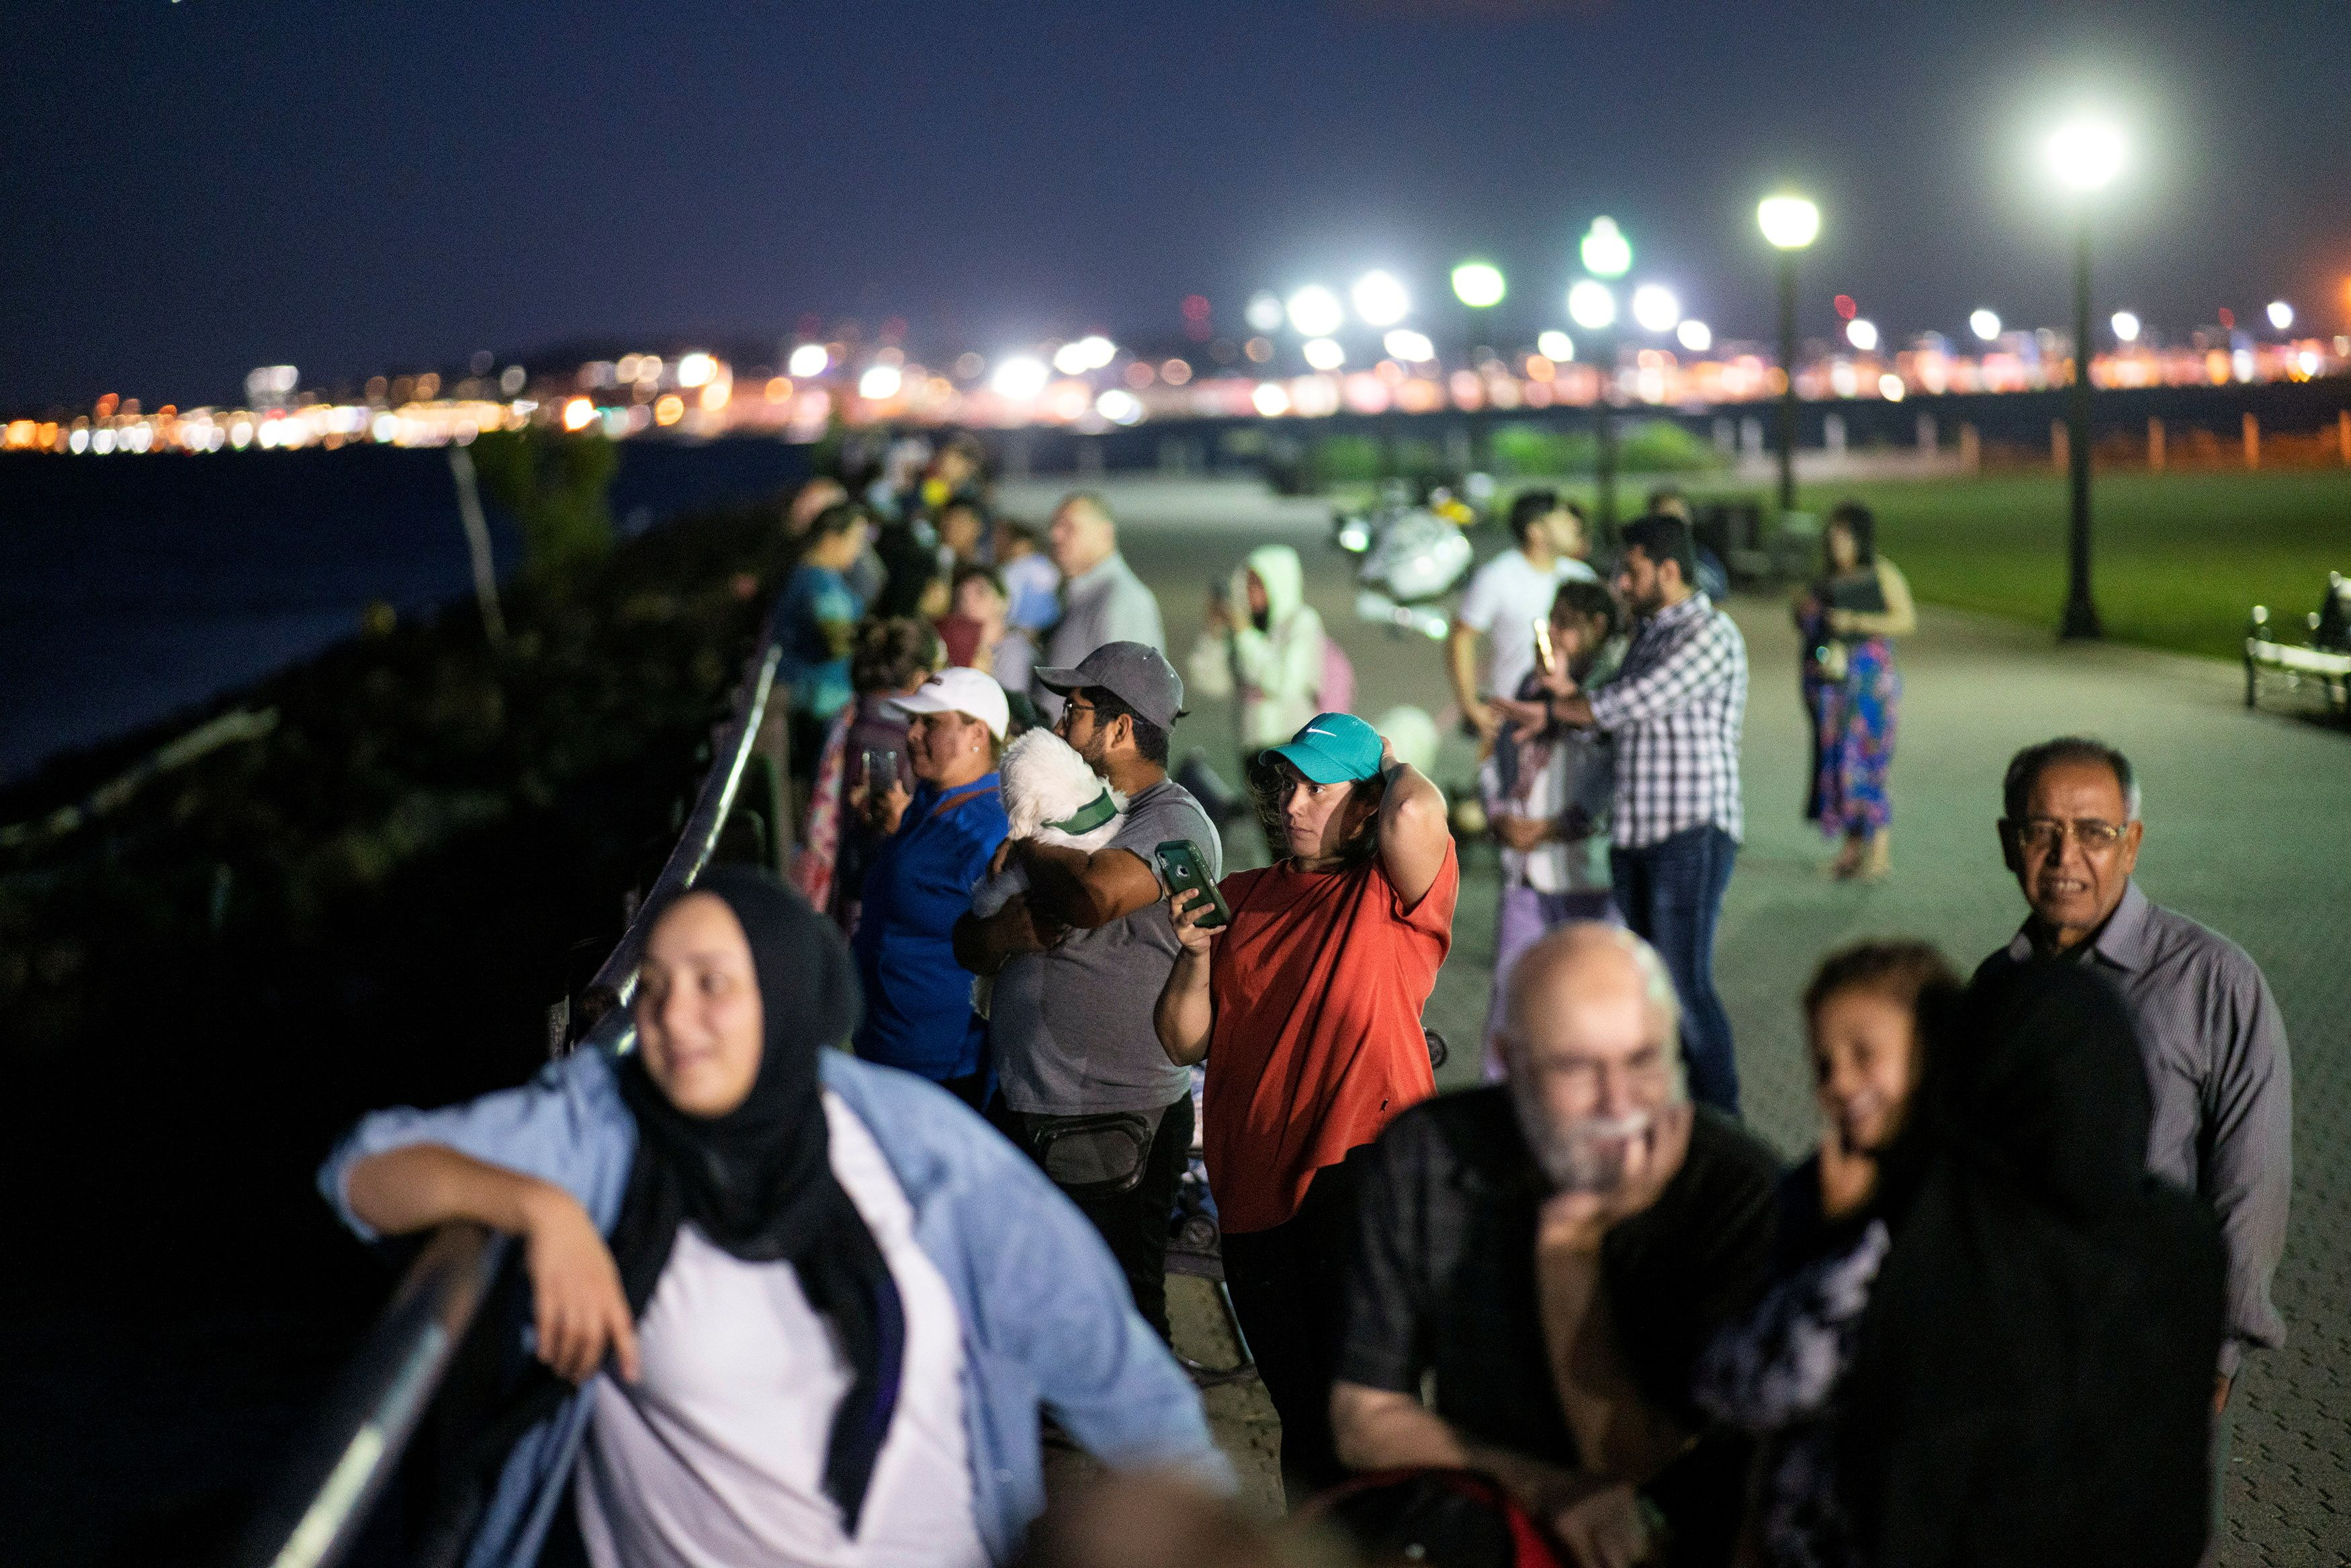 People watch fireworks in the New York City Harbor, as New York State celebrates reaching a 70 percent vaccination threshold for the coronavirus disease (COVID-19), as seen from Jersey City, New Jersey, U.S., June 15, 2021. REUTERS/Eduardo Munoz